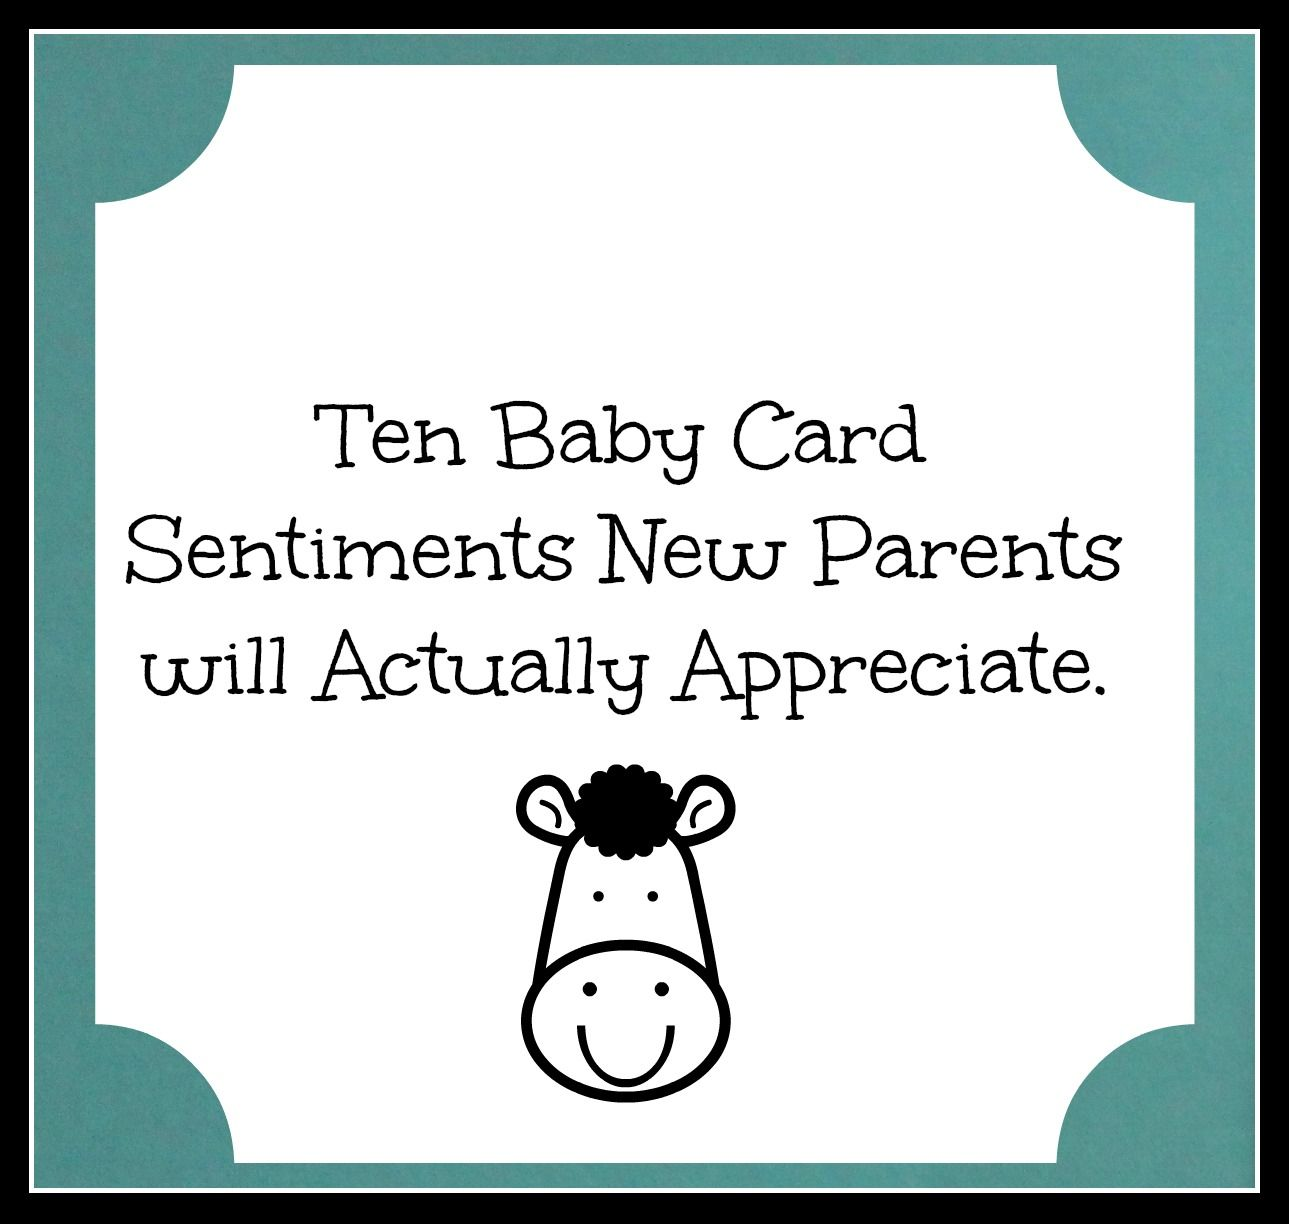 Baby card sentiments new parents will actually appreciate